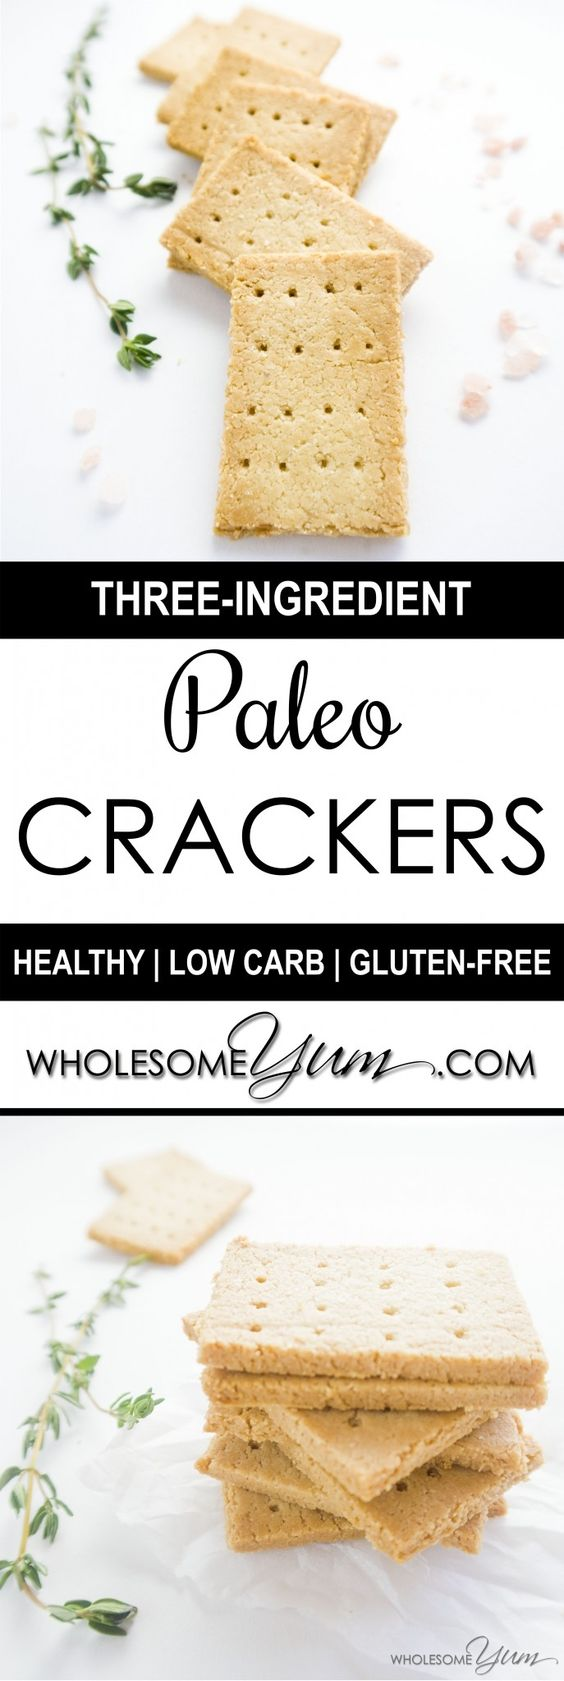 3-ingredient paleo crackers - vegan, gluten free